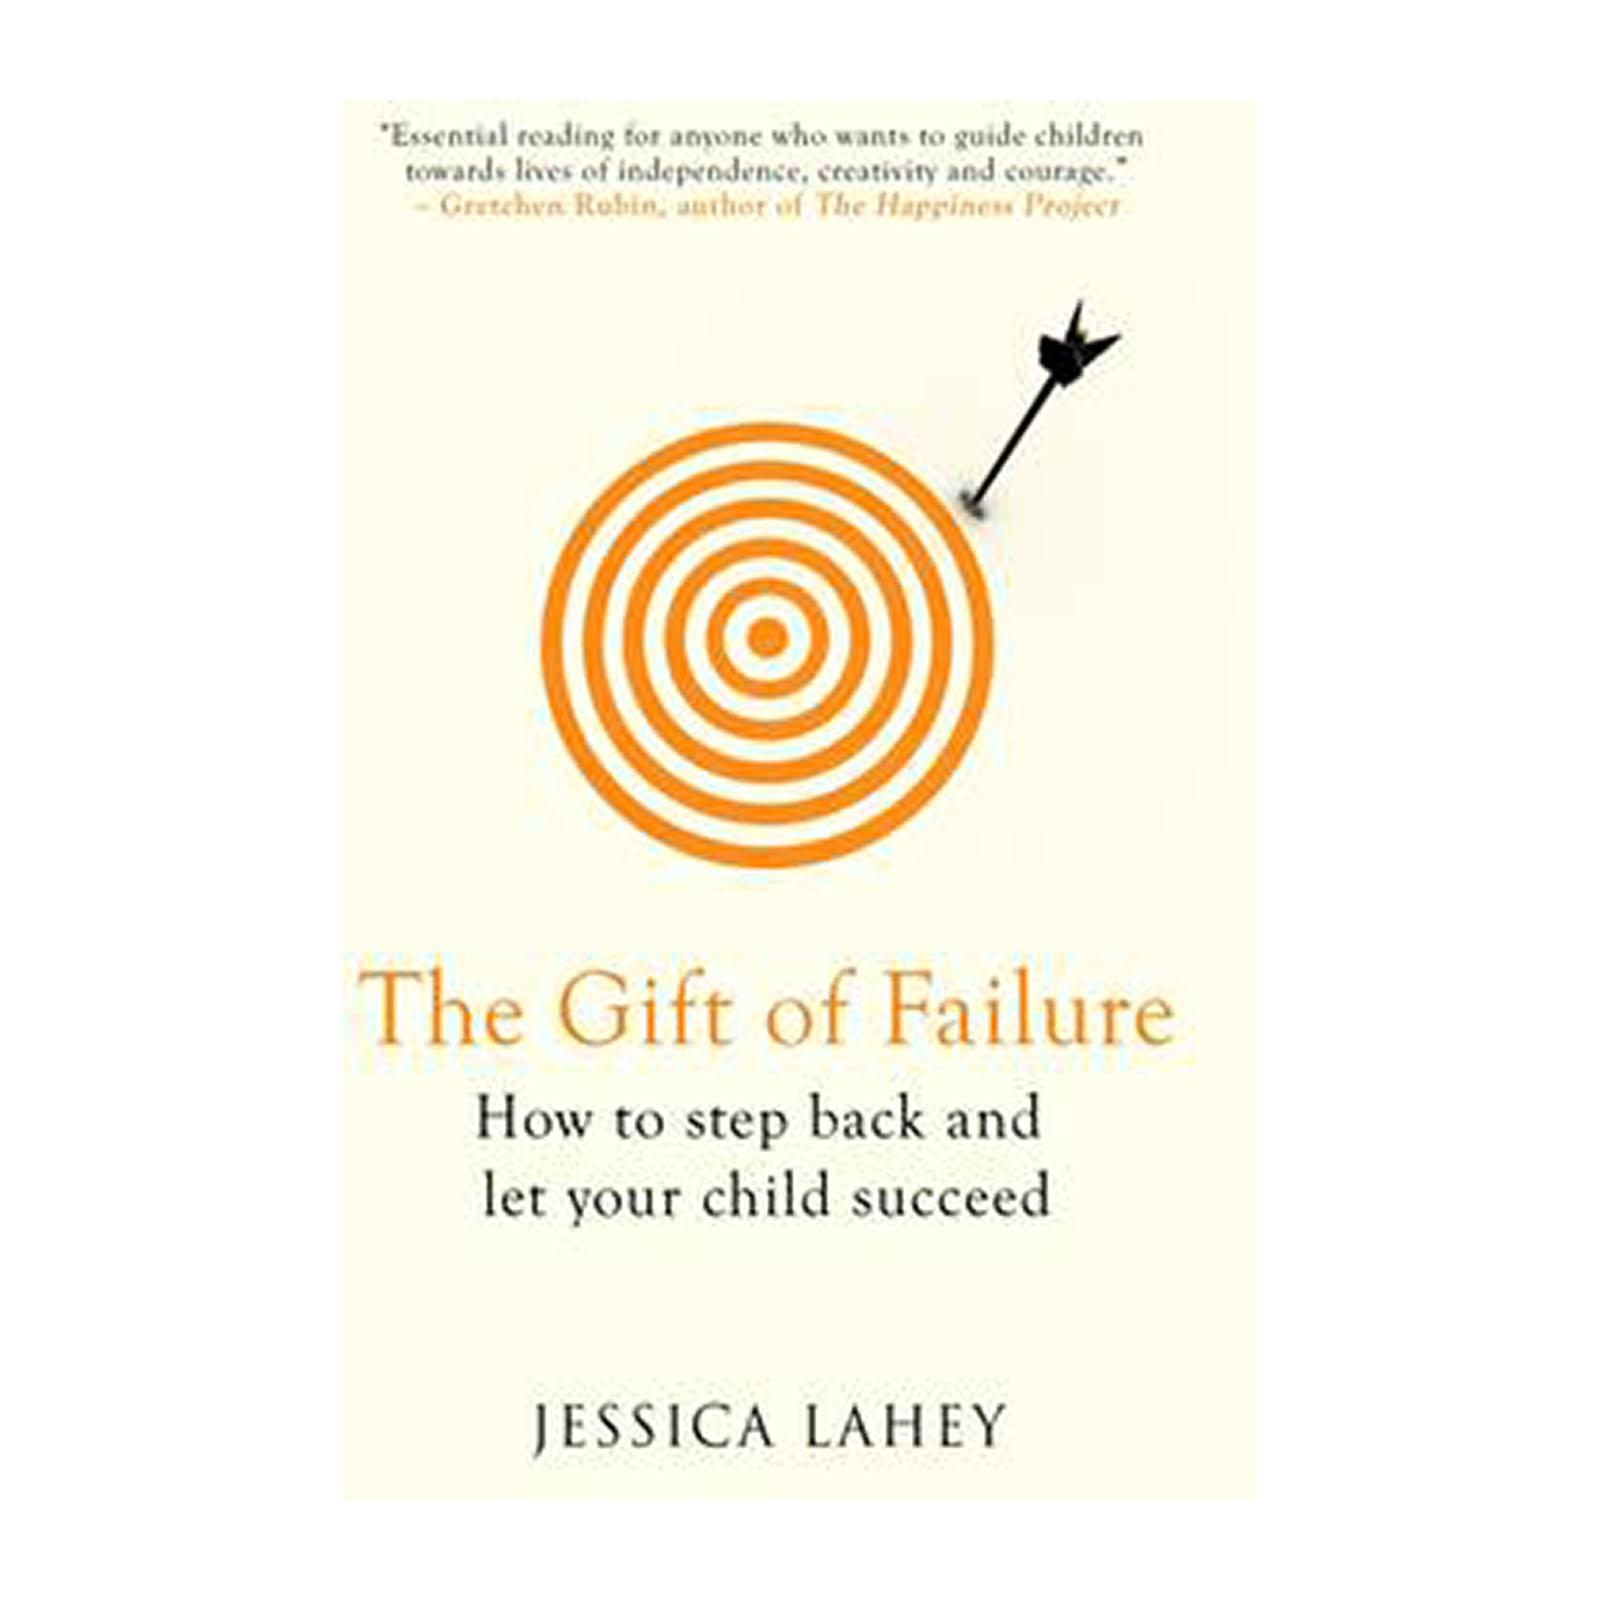 The Gift Of Failure: How To Step Back And Let Your Child Succeed (Paperback)